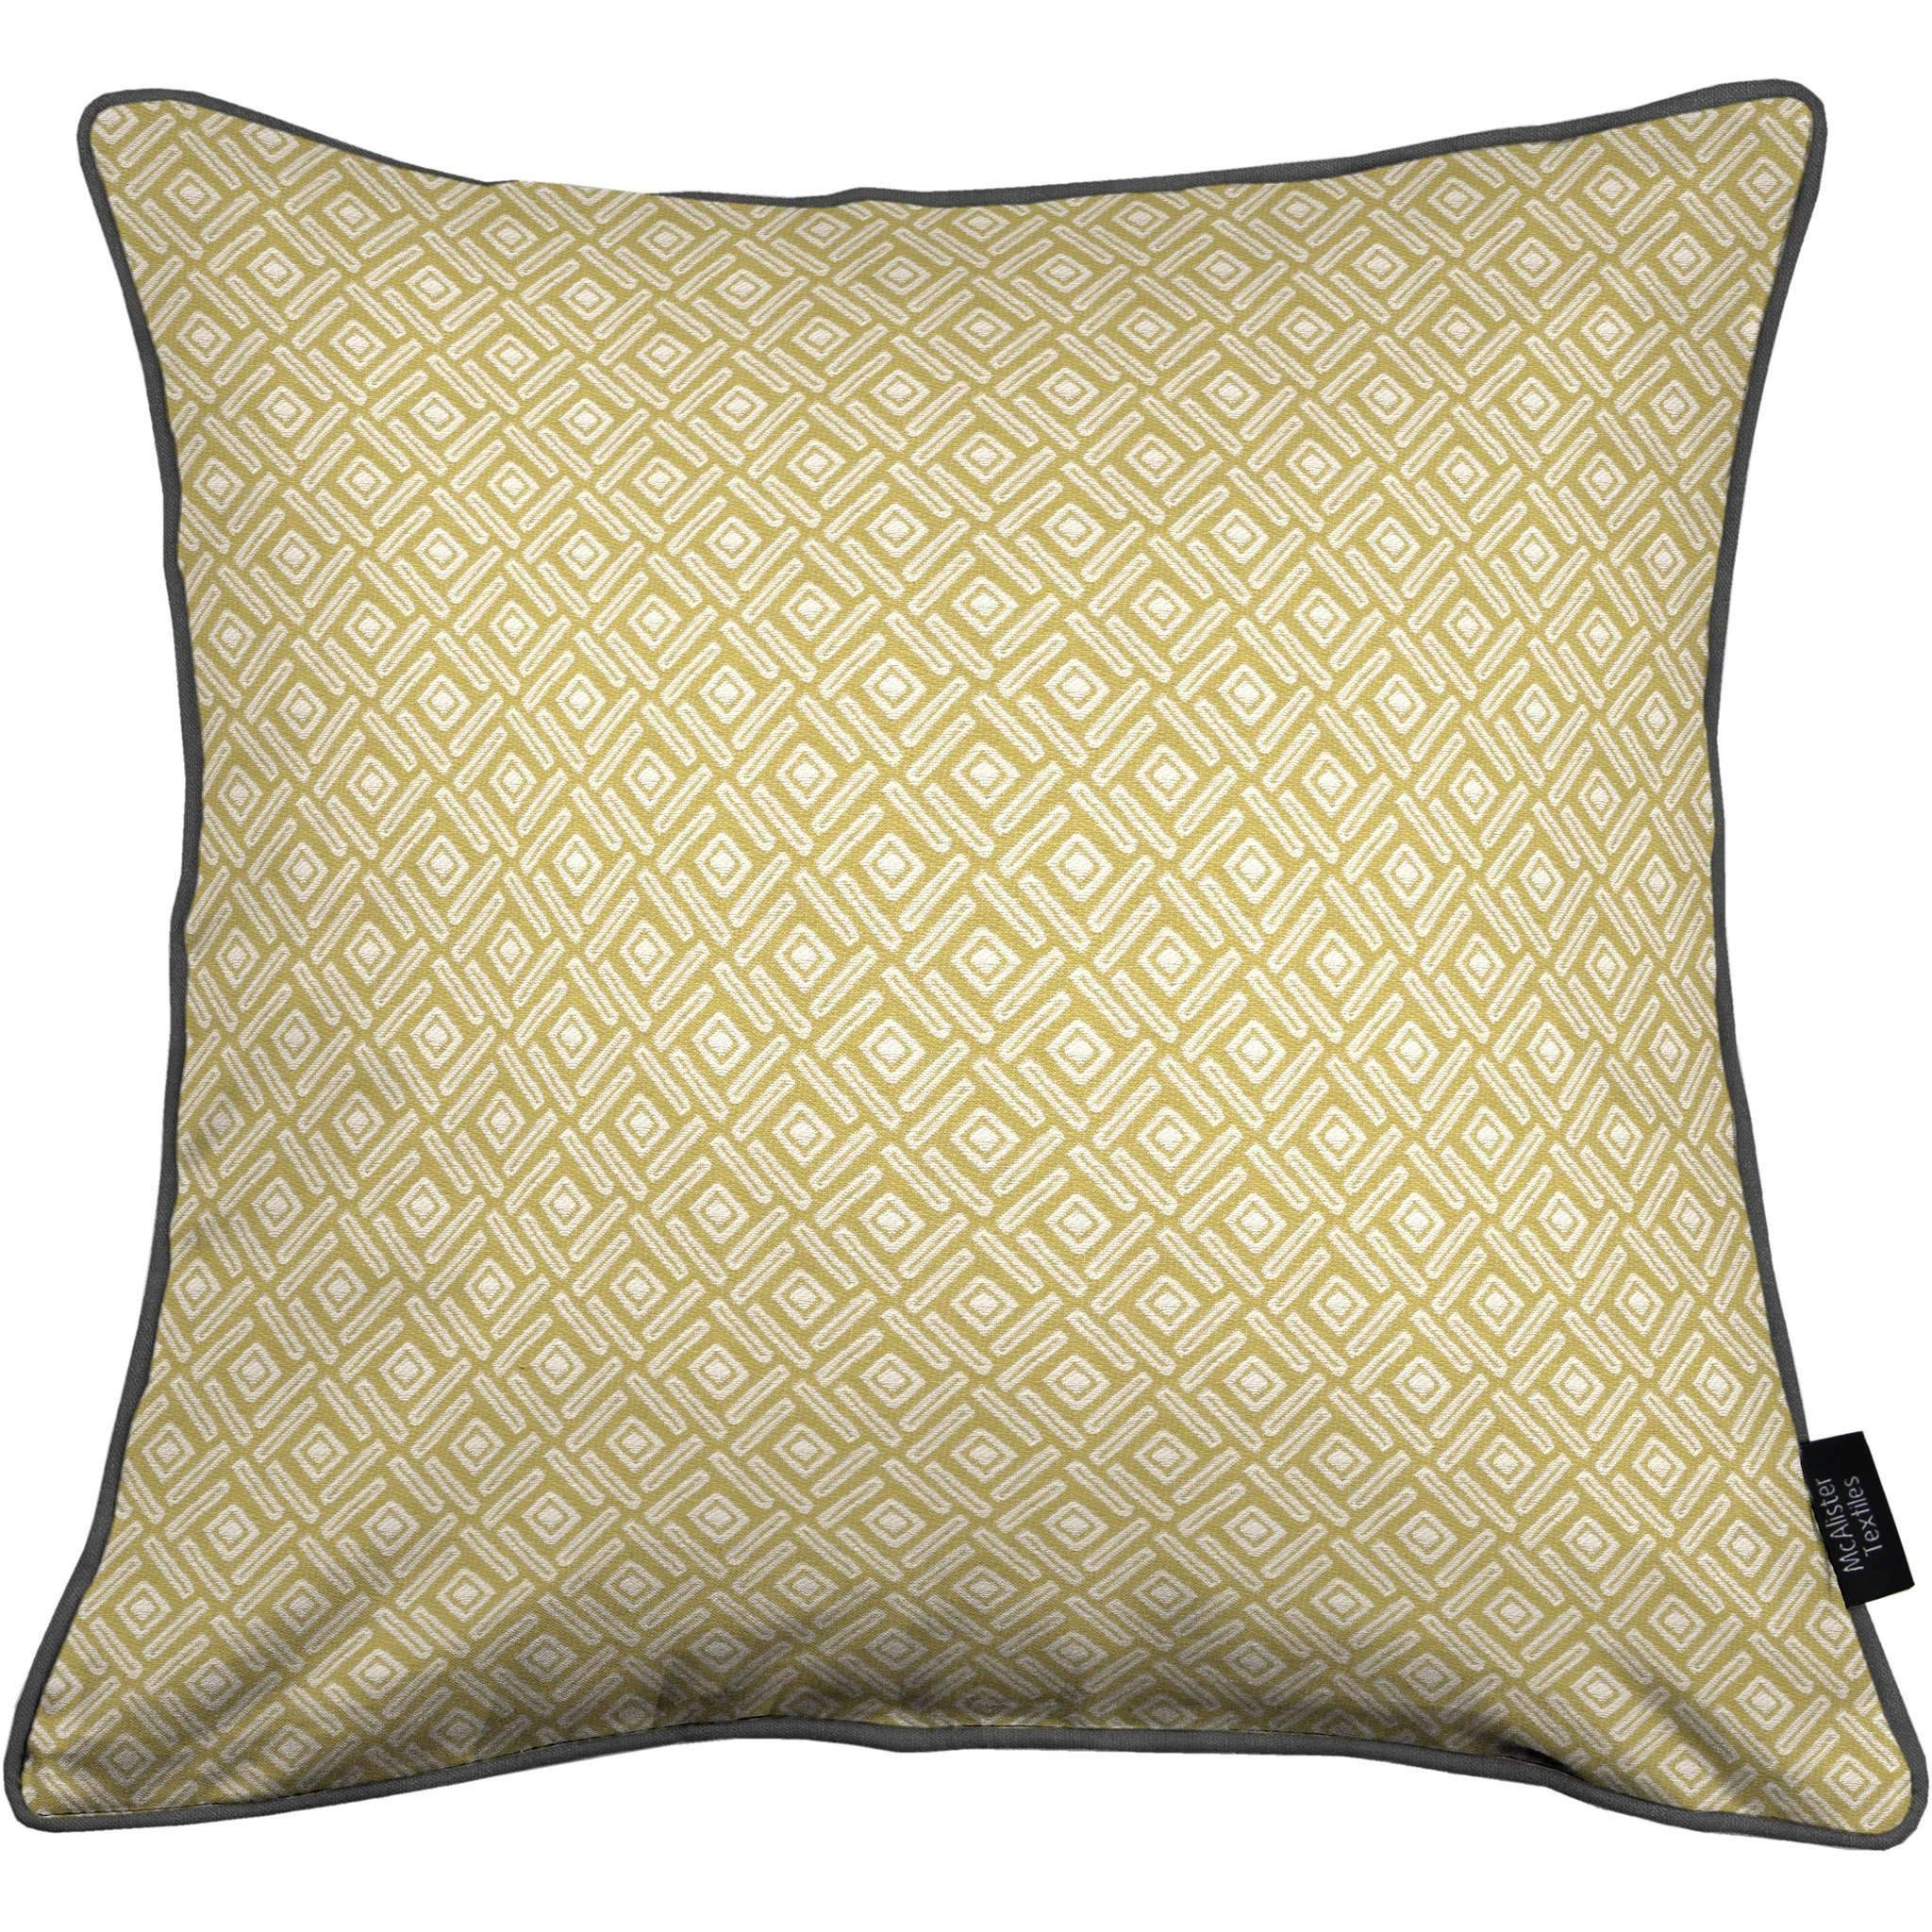 McAlister Textiles Elva Geometric Ochre Yellow Cushion Cushions and Covers Cover Only 43cm x 43cm